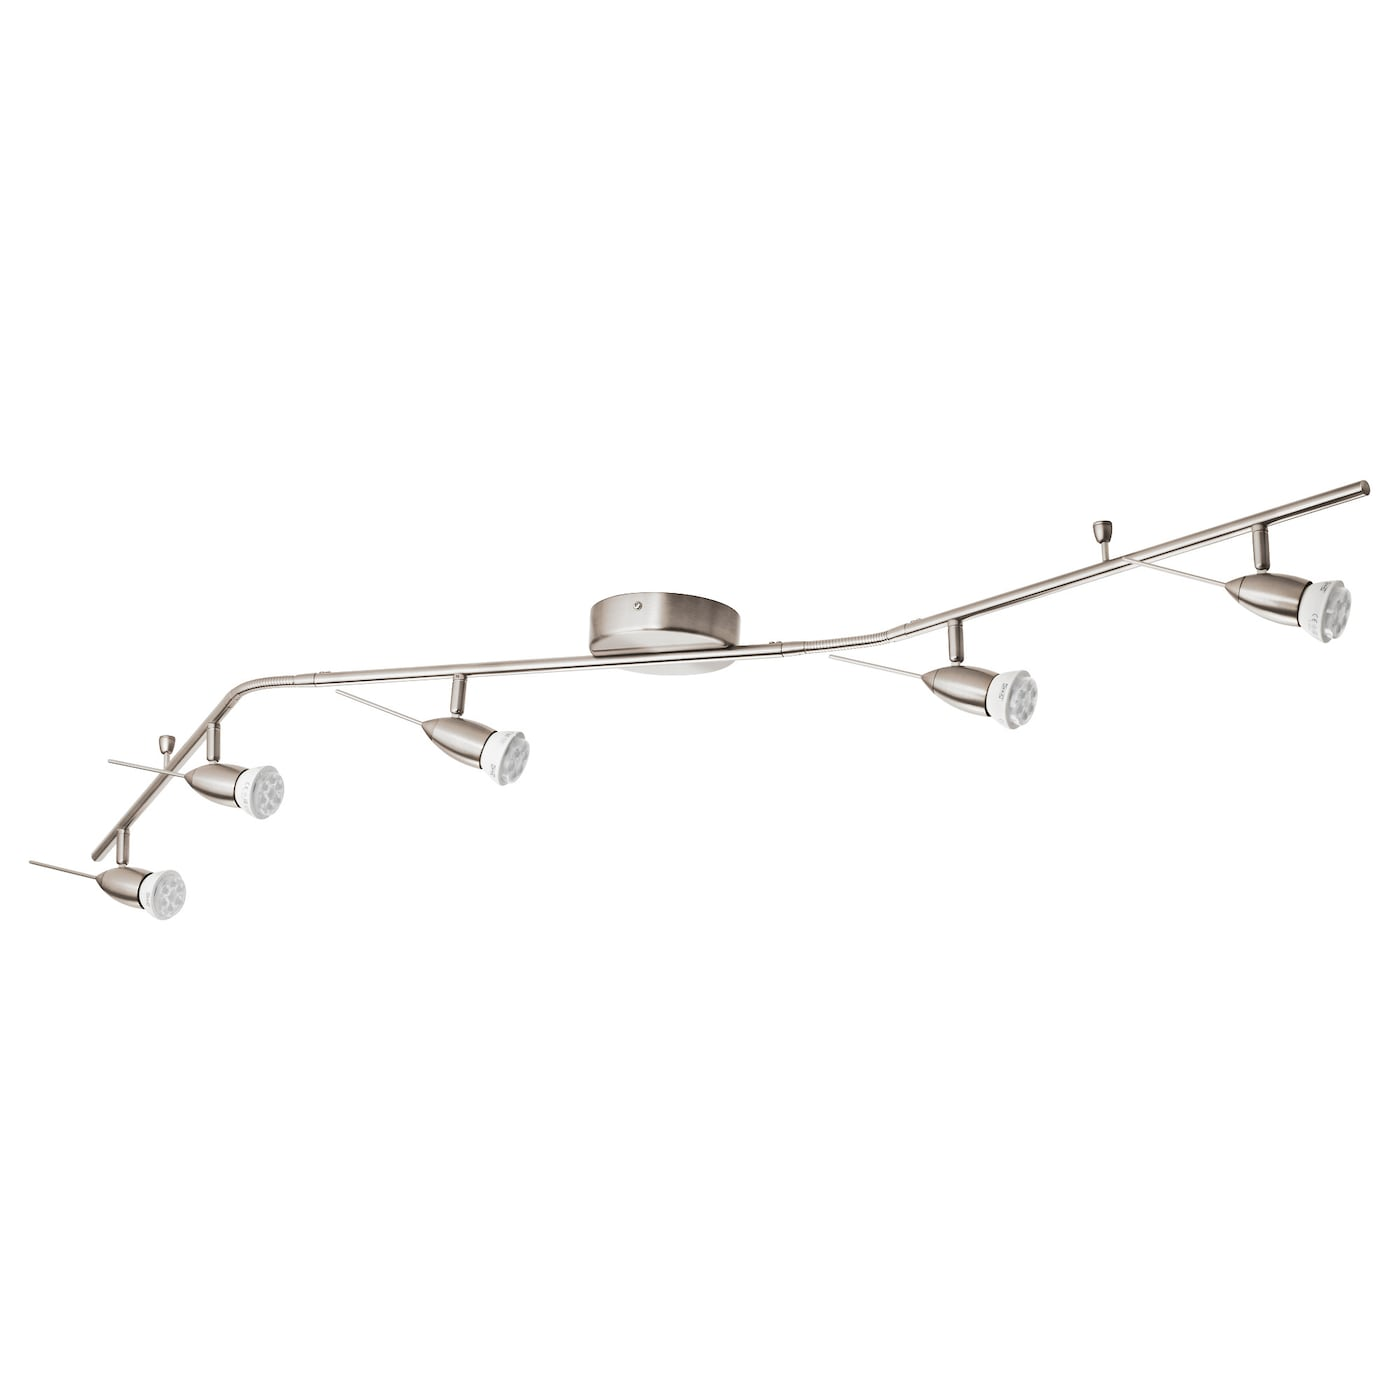 Ceiling lights led ceiling lights ikea ikea husinge ceiling track 5 spots aloadofball